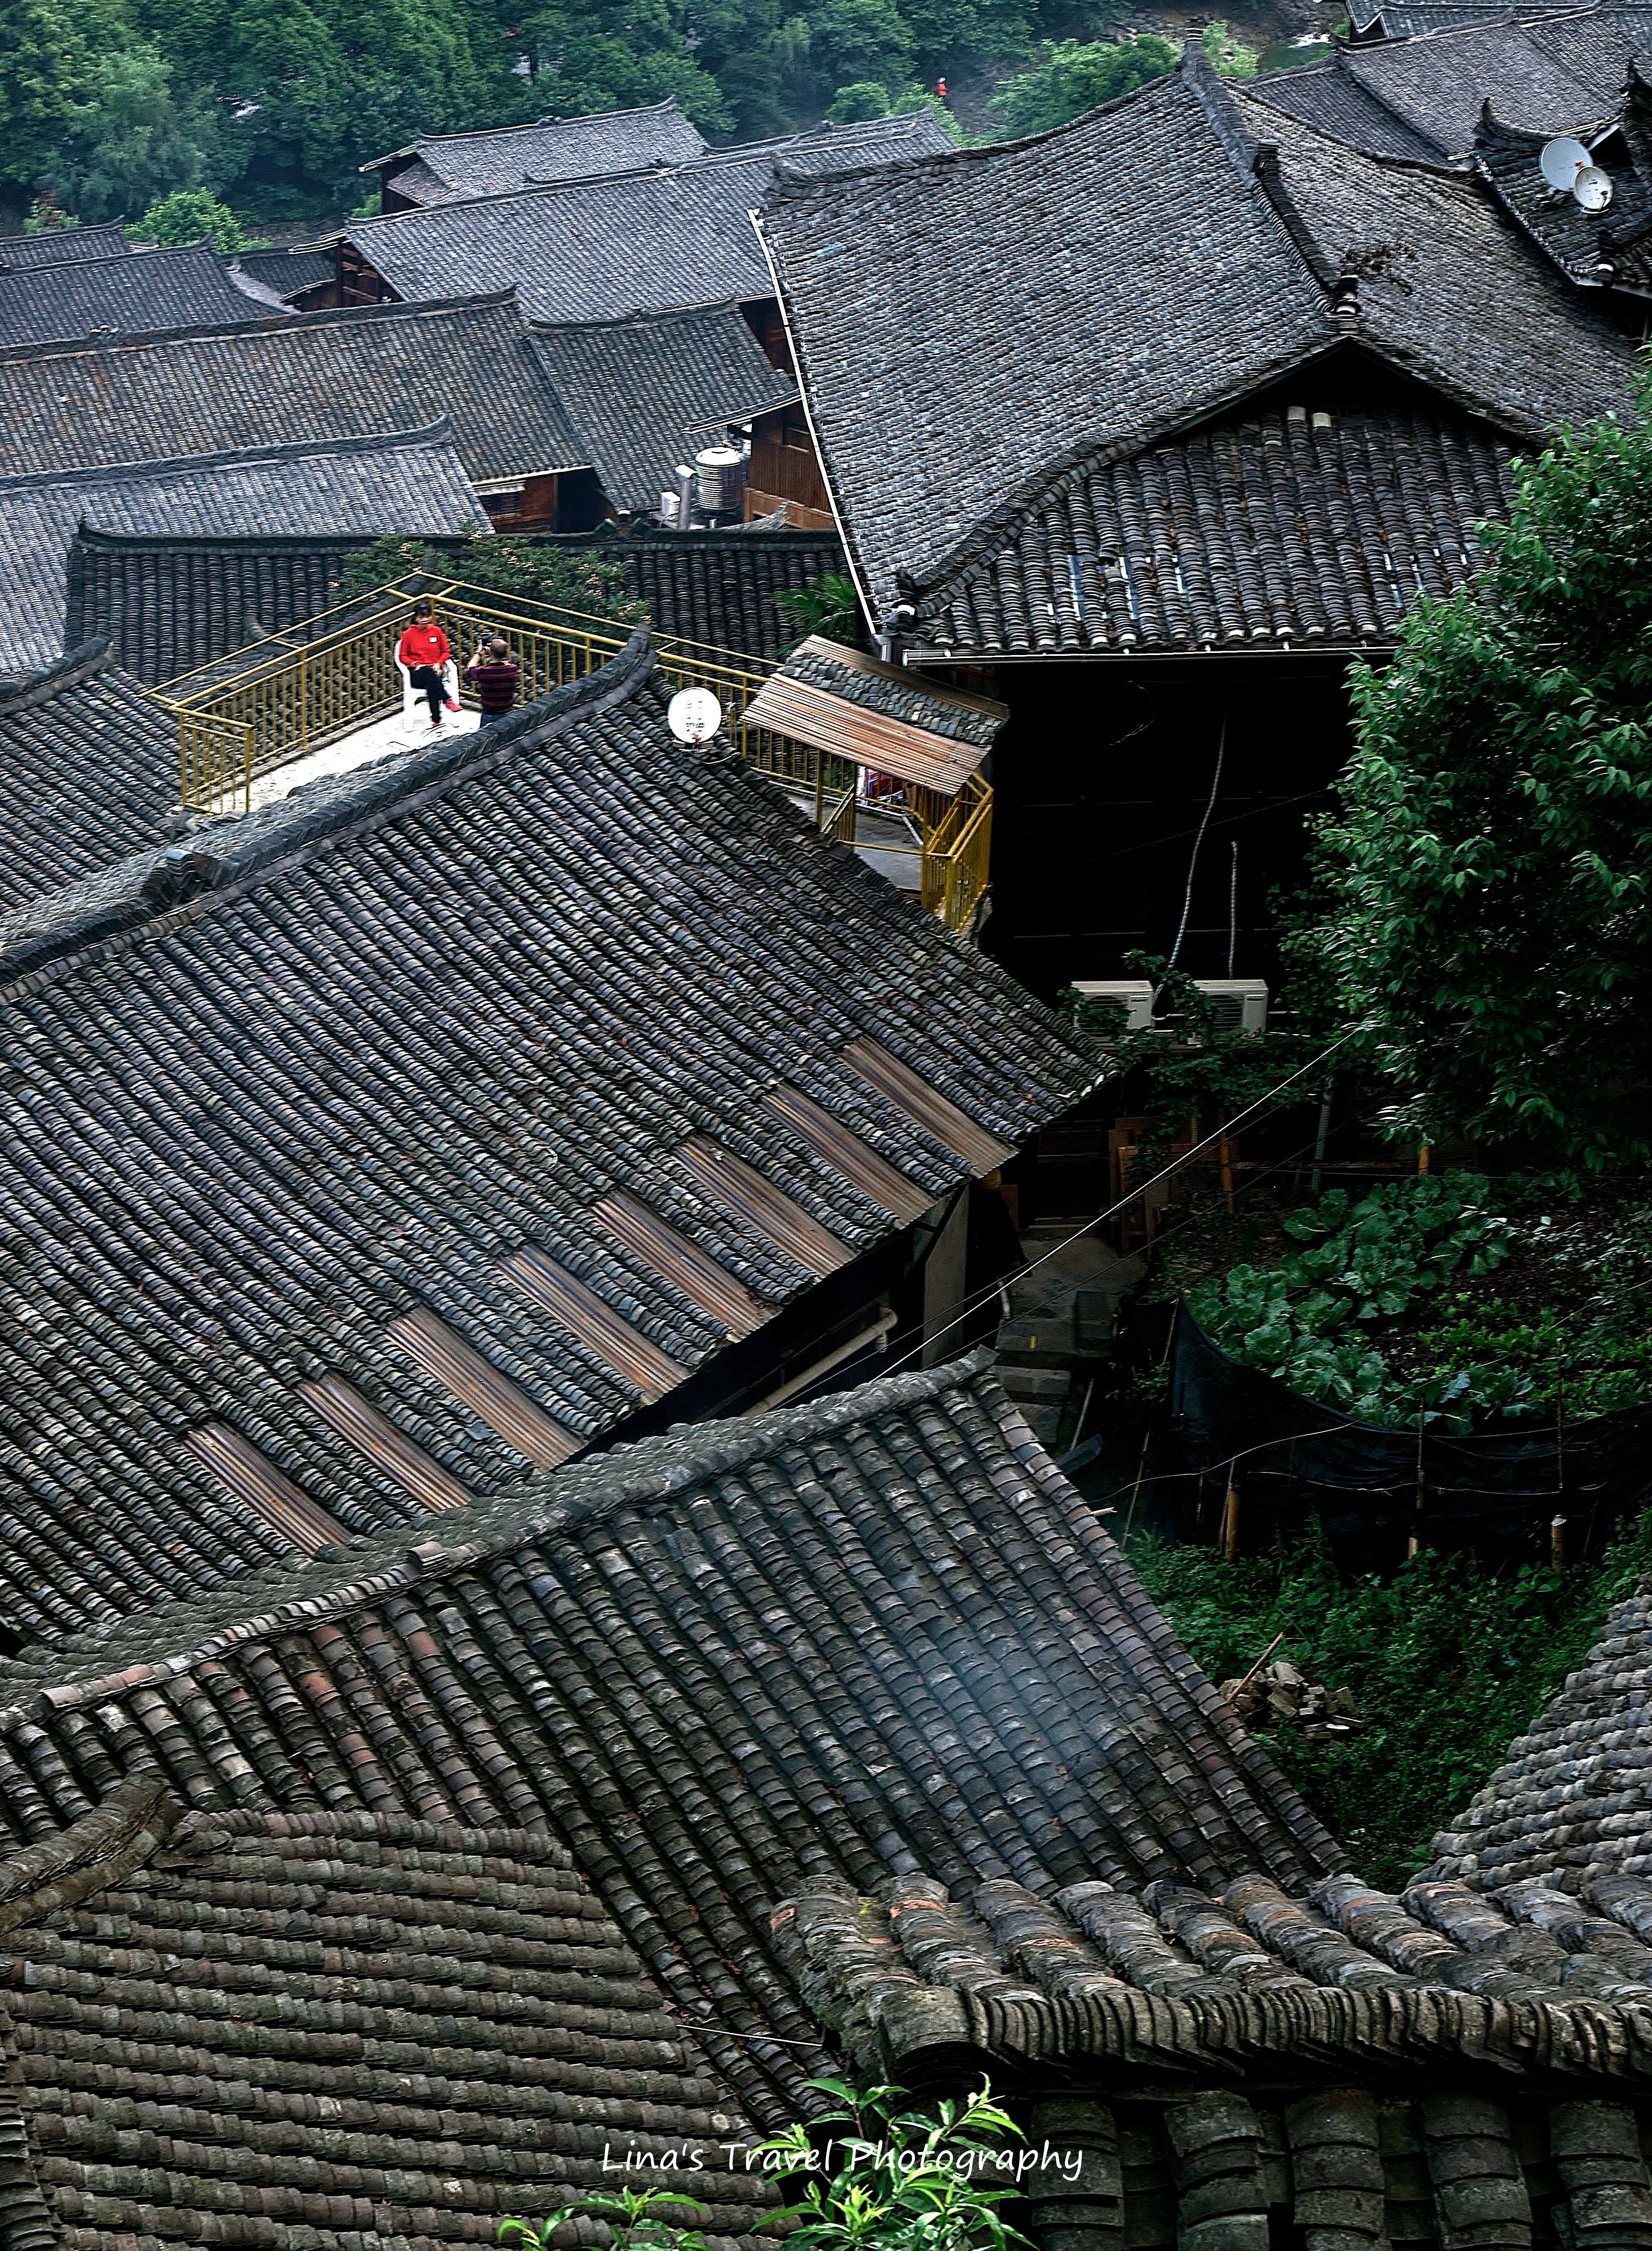 Roof view over Miao Ethnic People Village, Xijiang, Guizhou, China